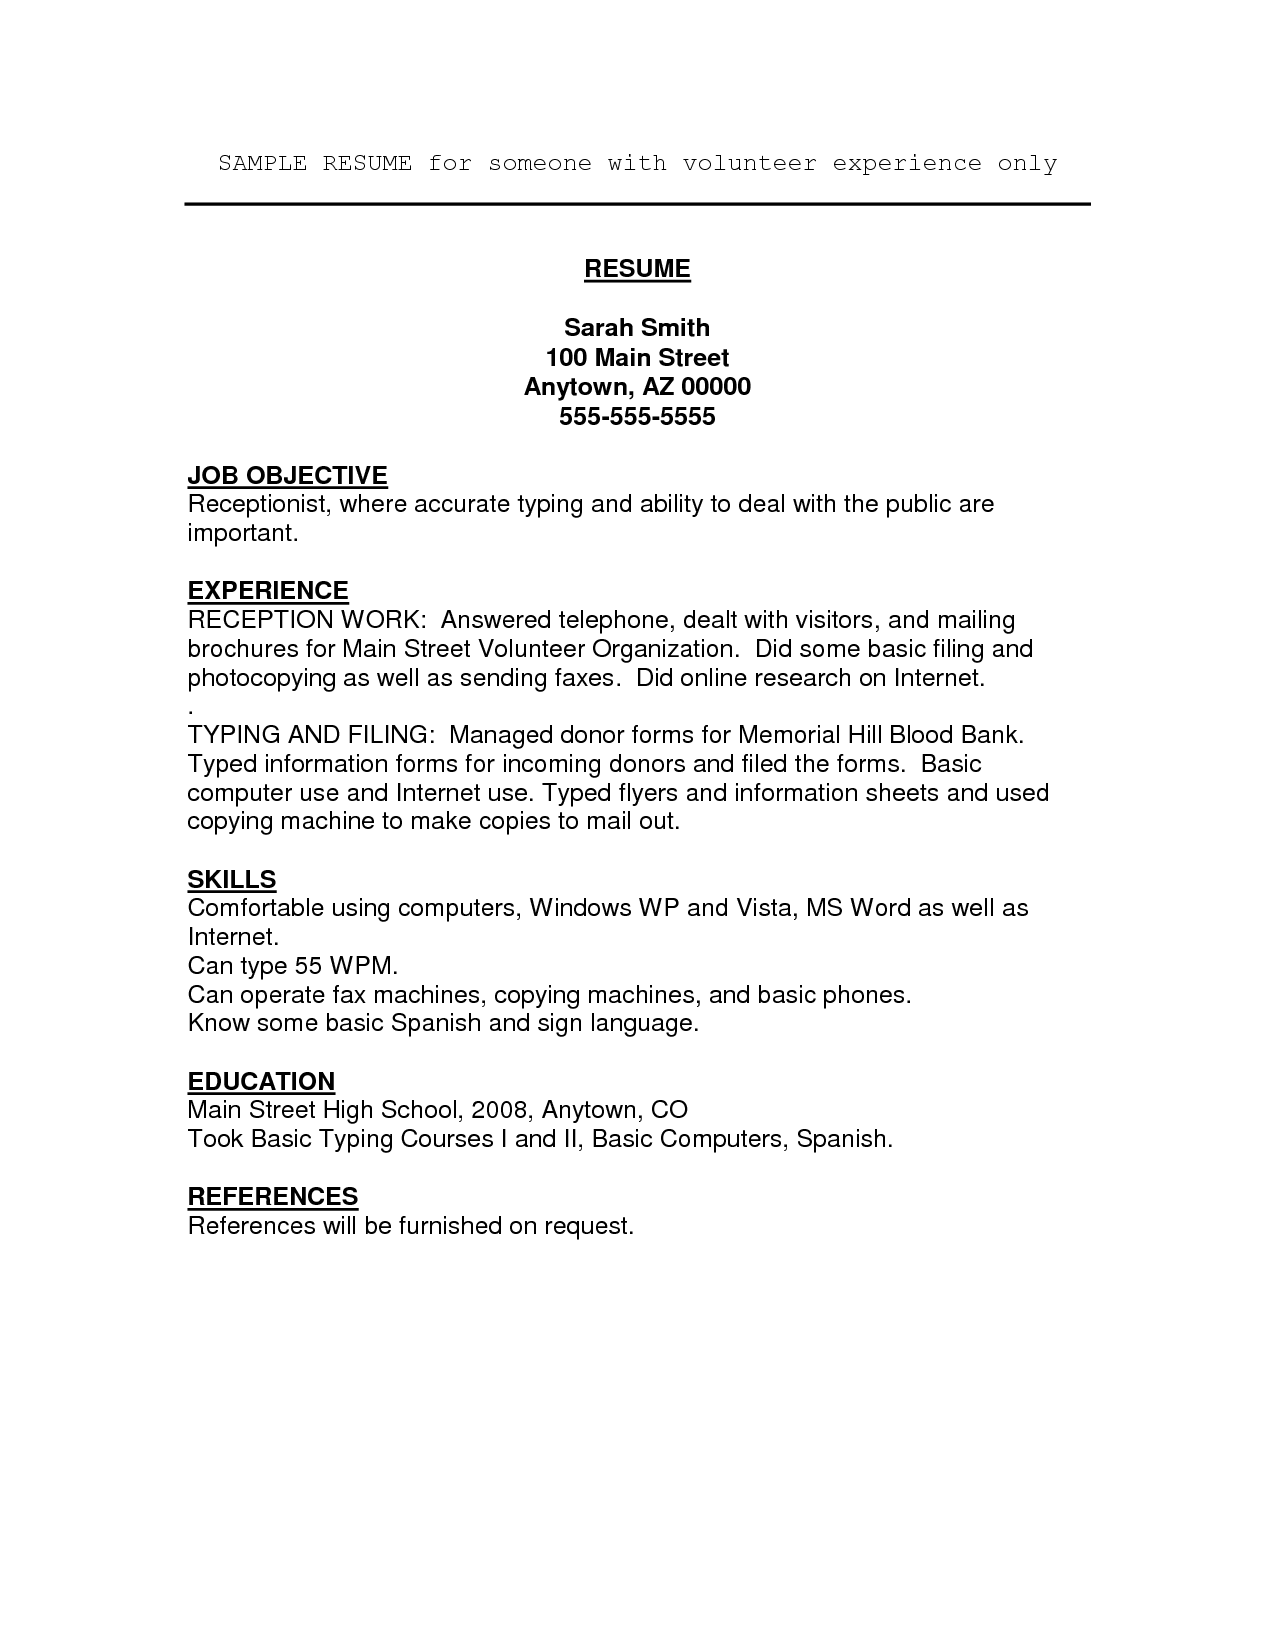 Volunteer Experience Job Resume Examples Resume Work